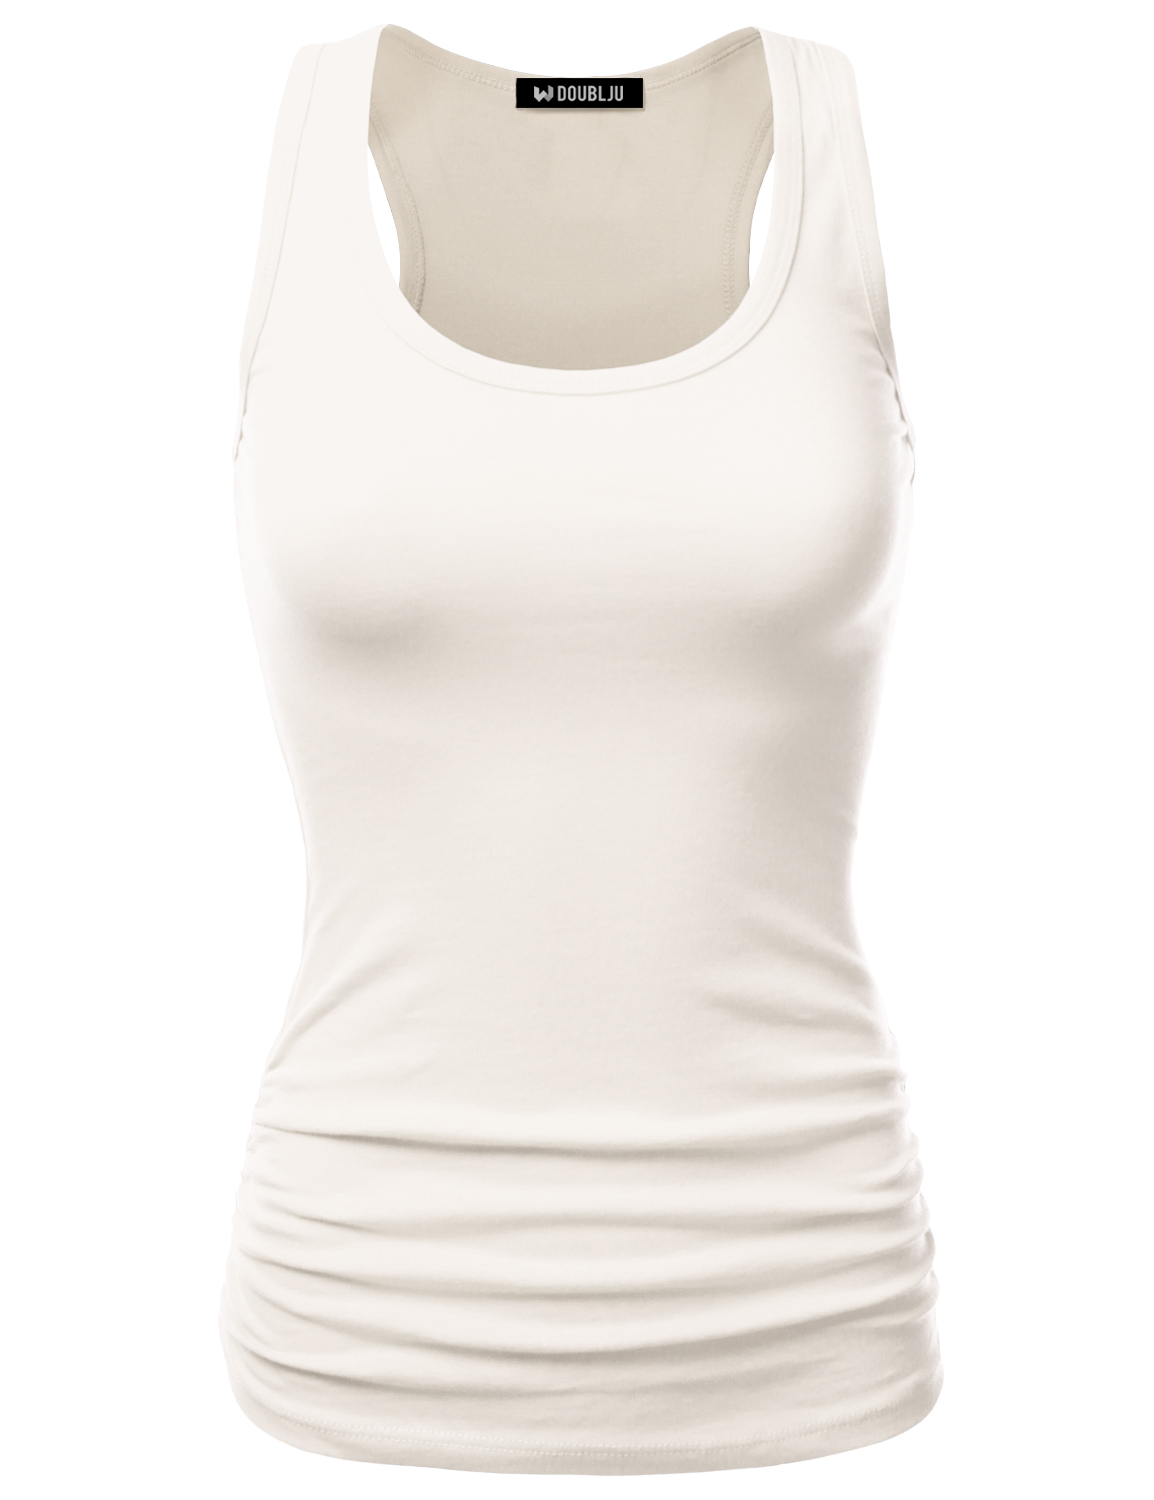 e0670a02b73ba Doublju Women s Cute Yoga Workout Mesh Tank Top Activewear Sexy Sports Shirt  IVORY XL